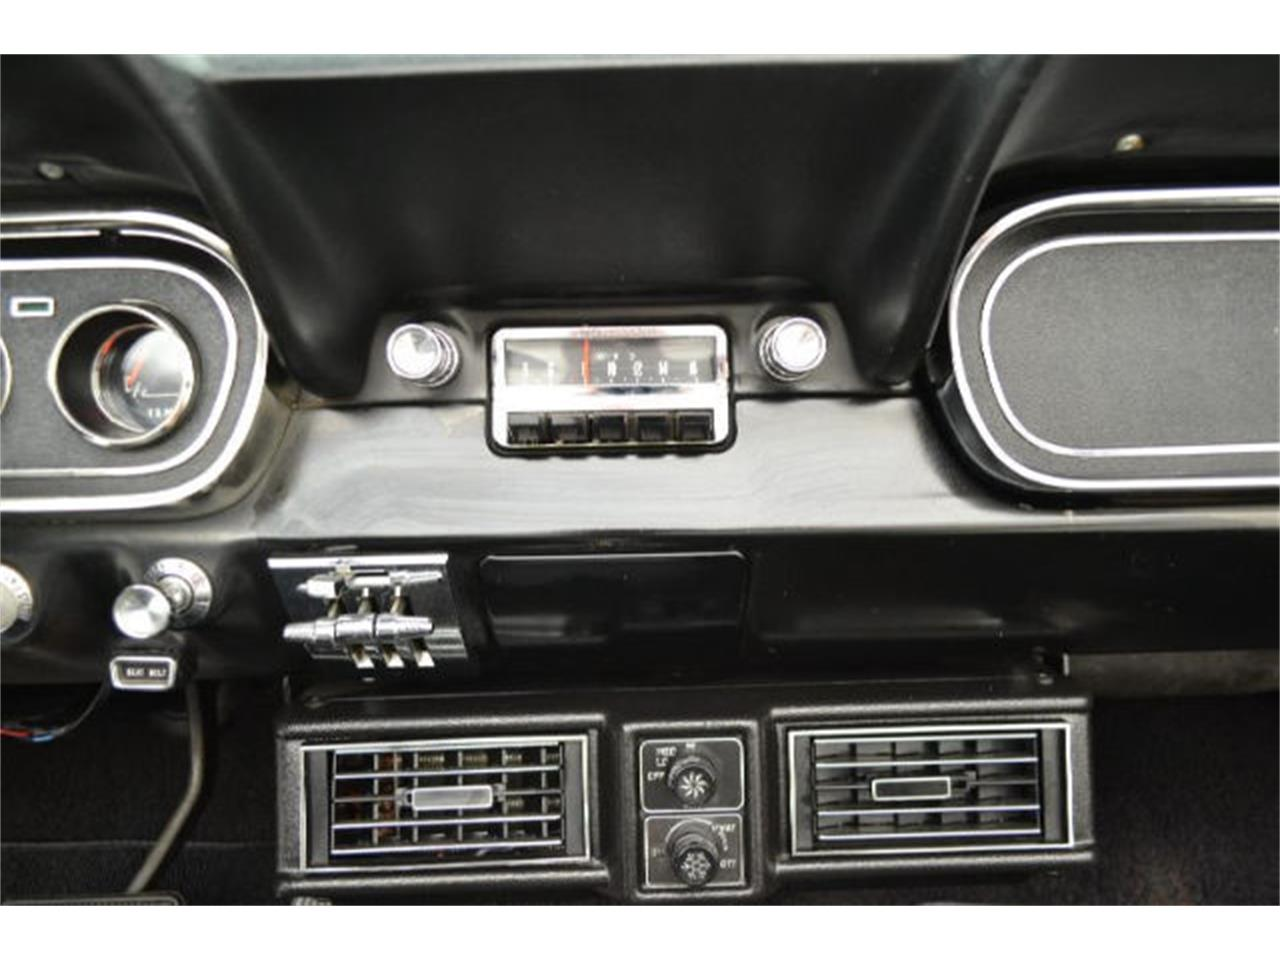 Large Picture of Classic '66 Mustang located in North Carolina - $39,995.00 Offered by Paramount Classic Car Store - JBCM